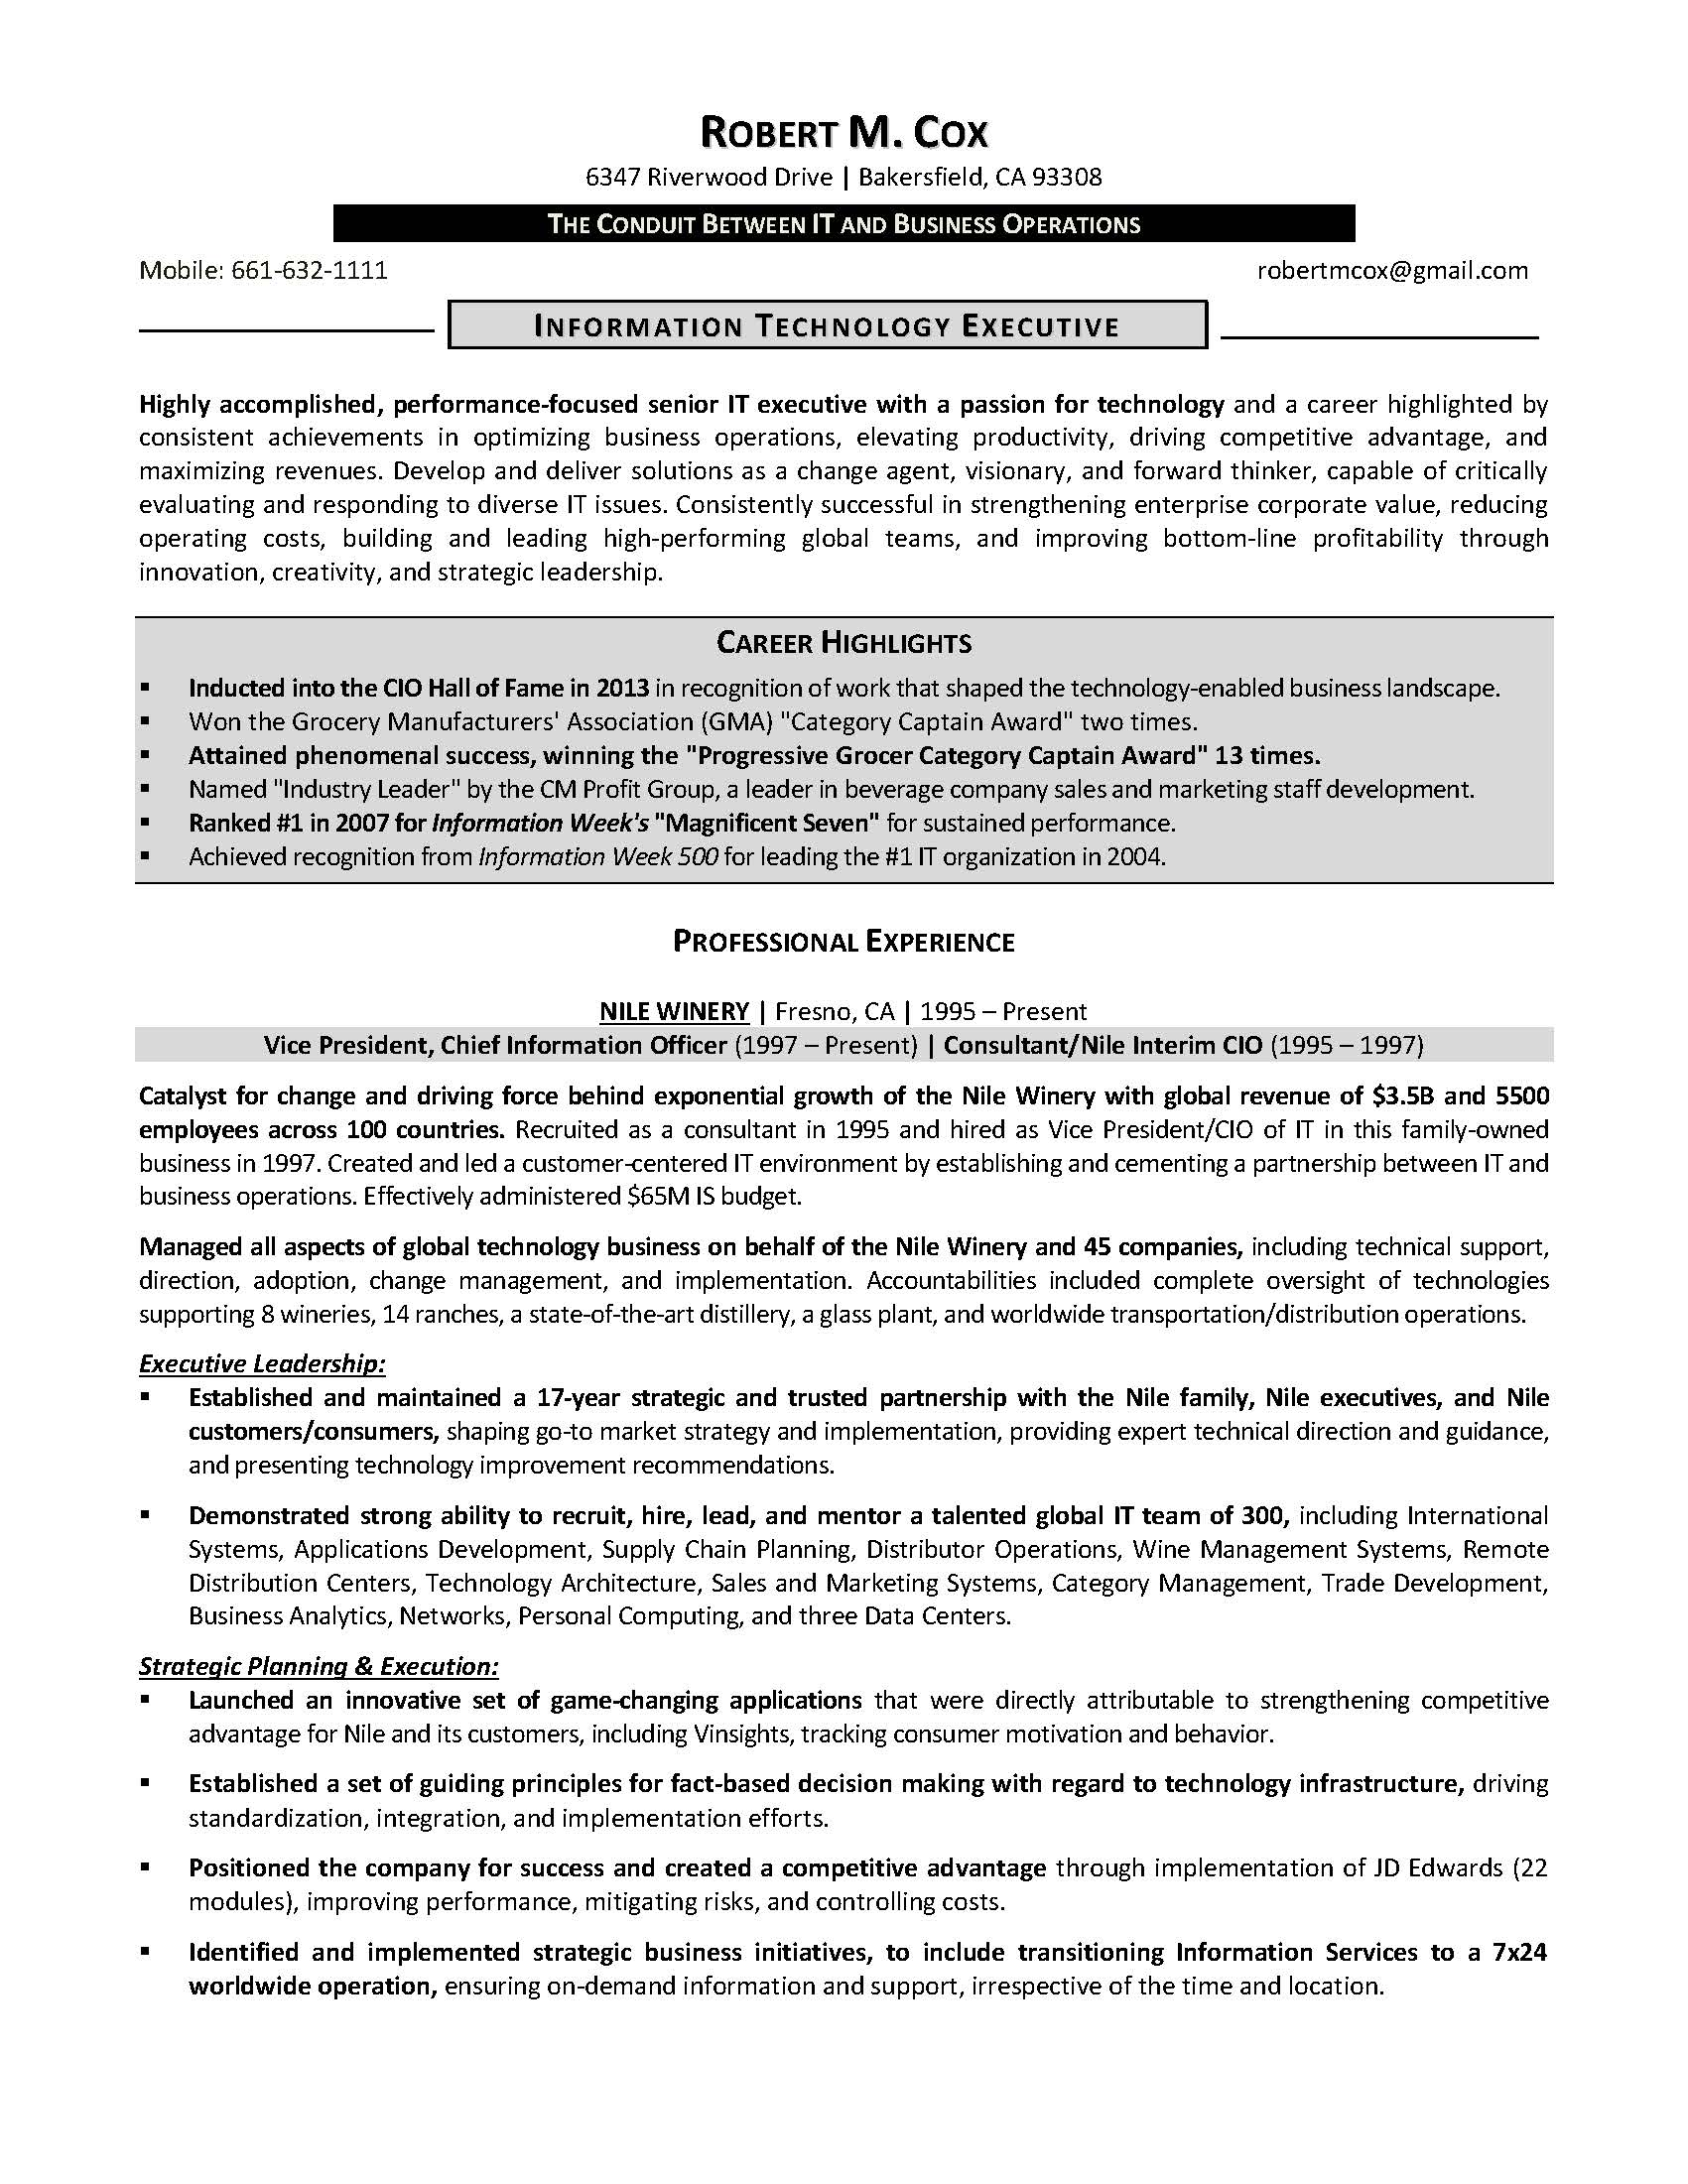 interview winning good resume samples atlanta ga it resume sample 3 resume samples executive management resume samples executive management resume samples